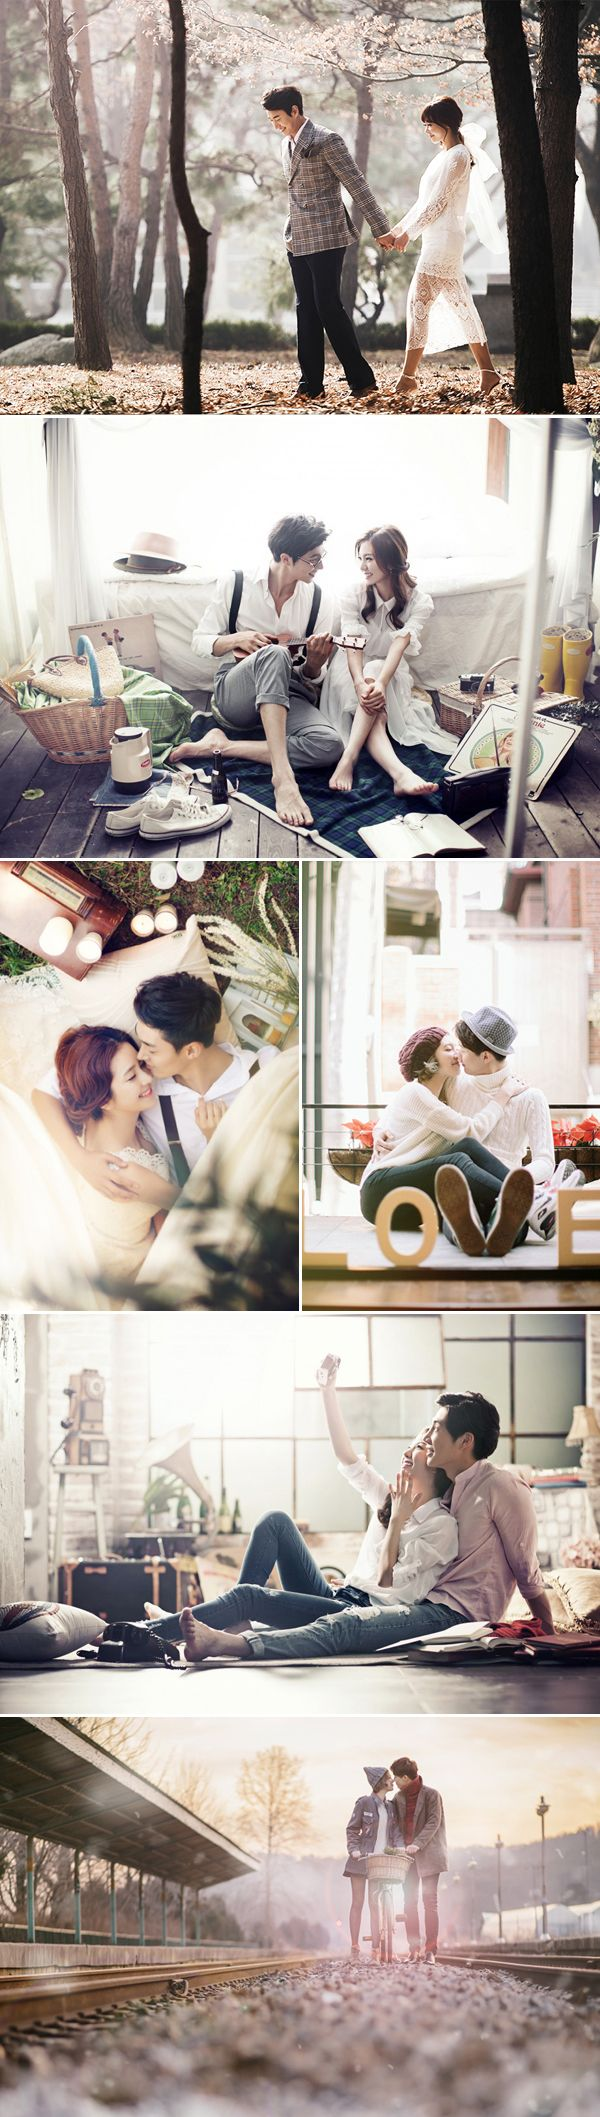 Real Life K-Drama 30 Dreamy Korean Concept Pre-wedding Photos! Get more info here: https://goo.gl/nIOeX9